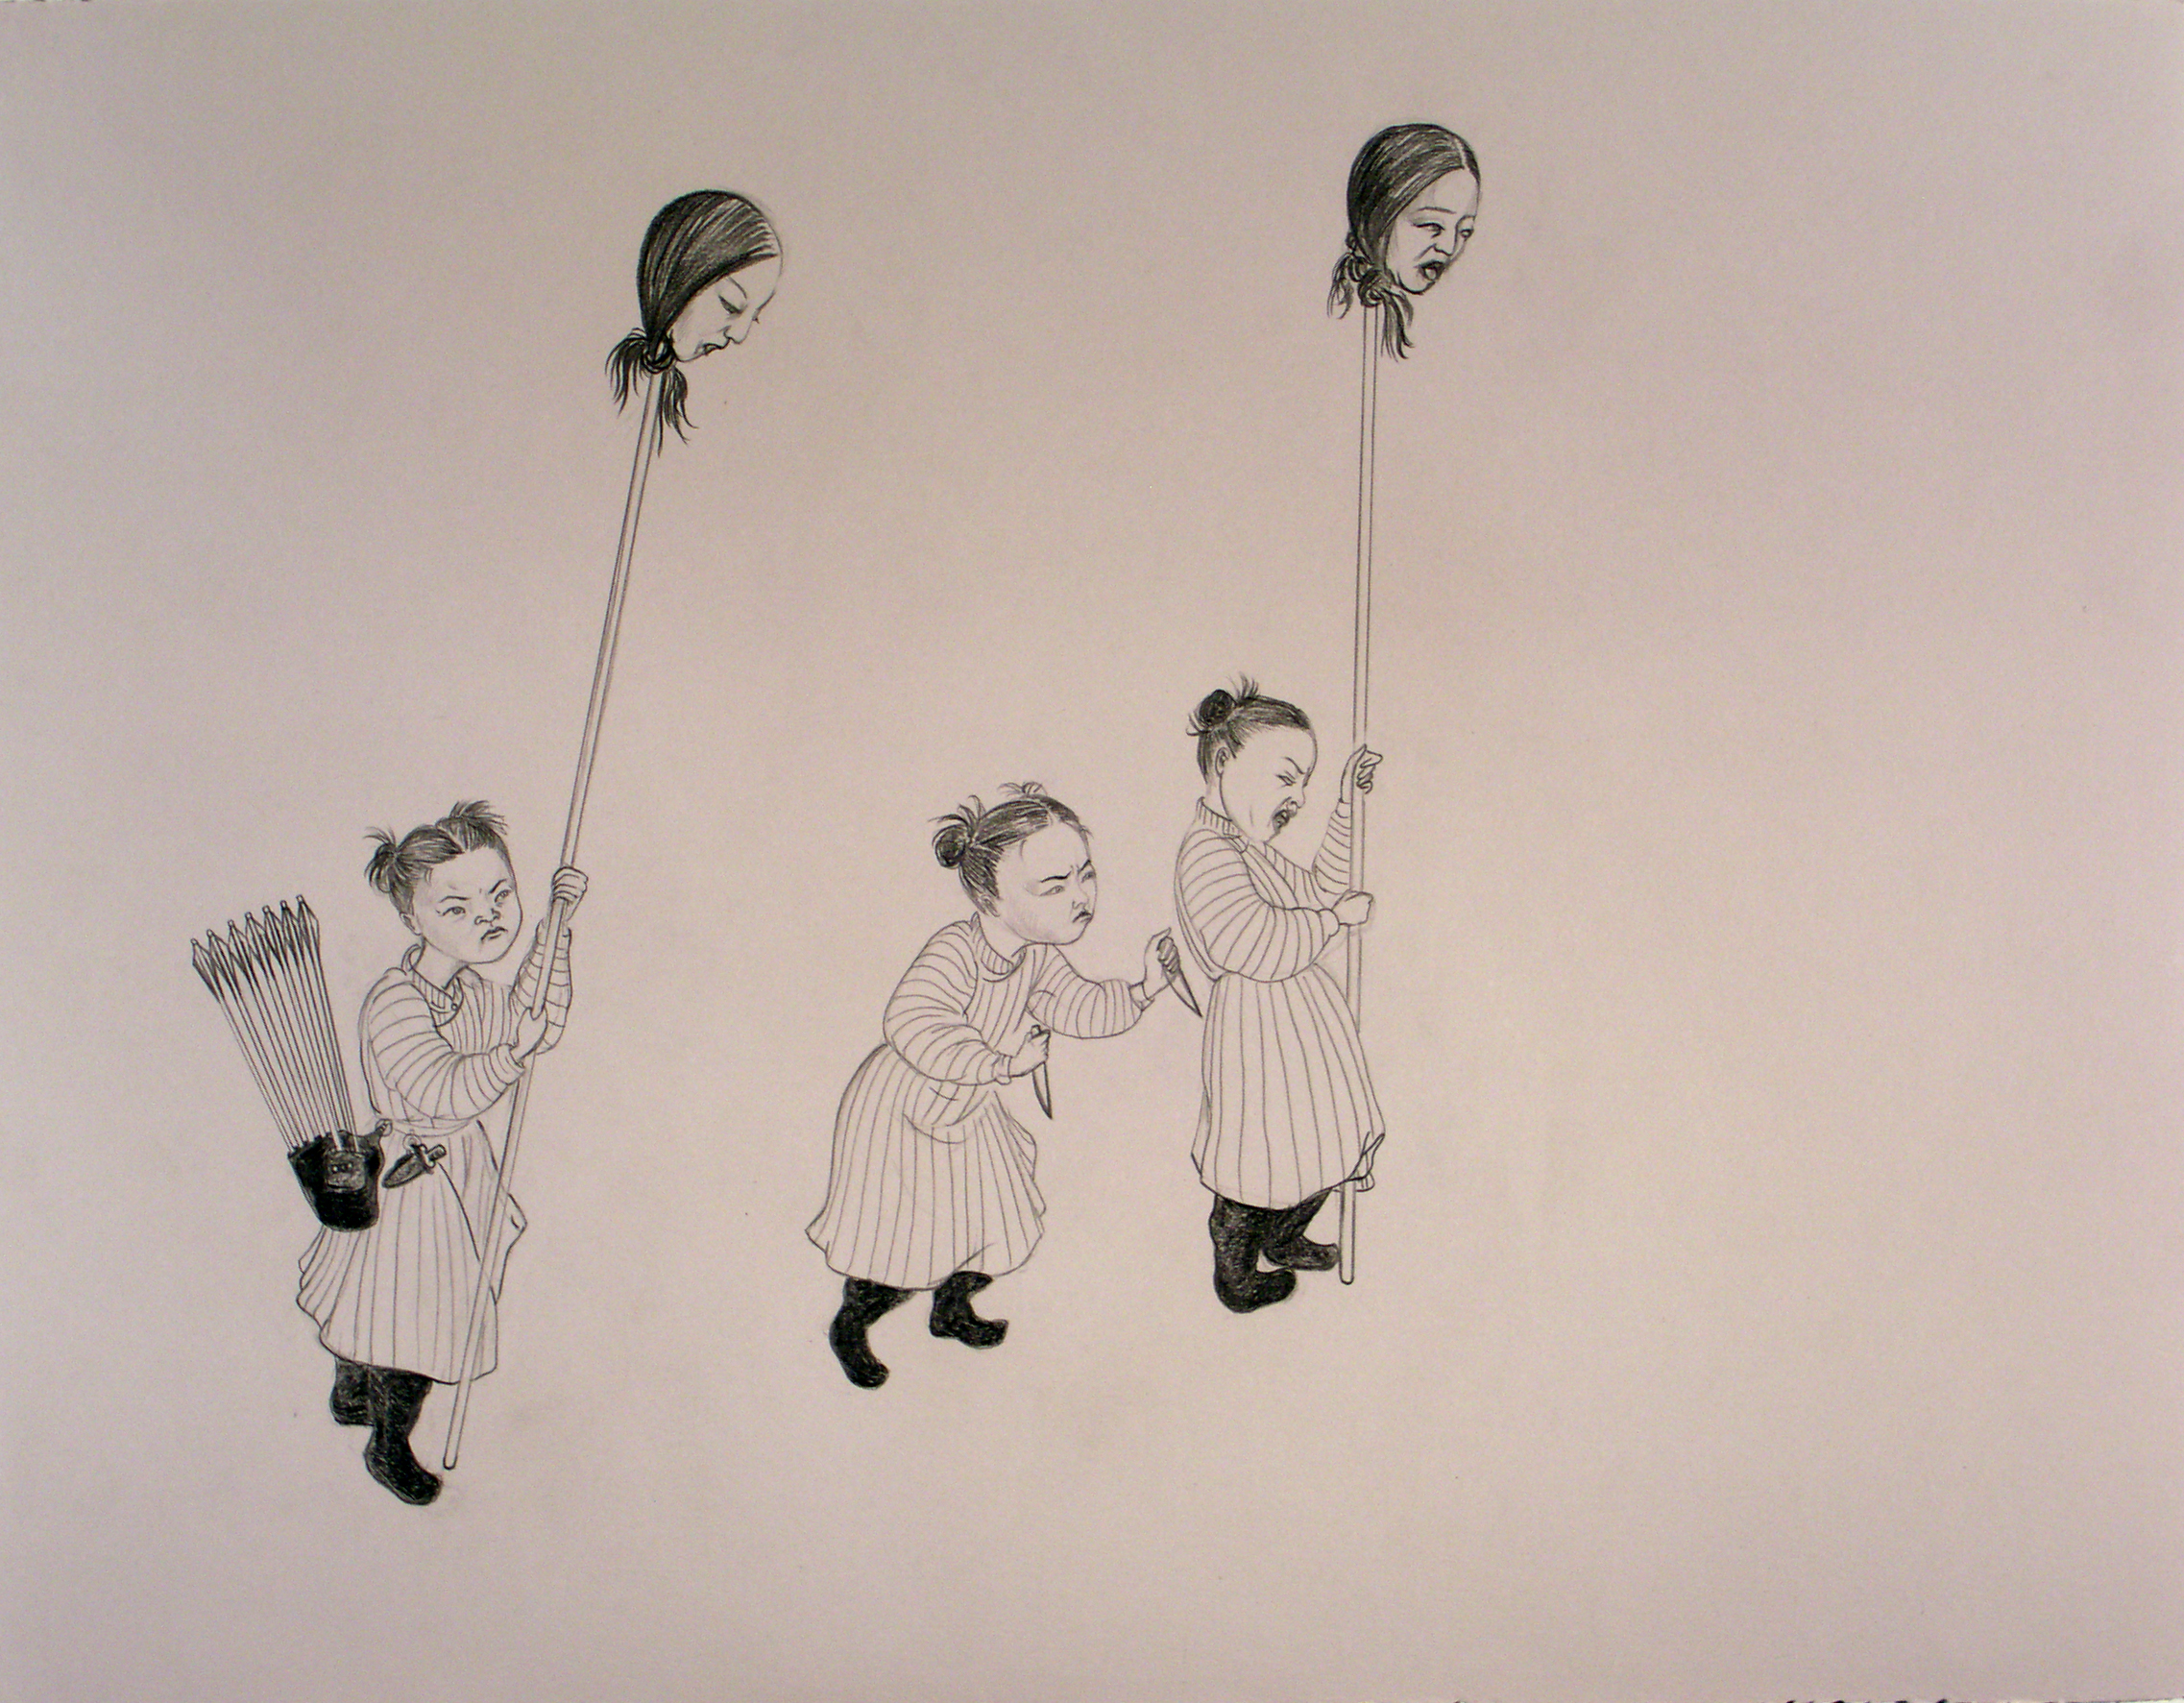 Warrior Girls,  2005 Graphite on gray paper 19.5 X 25 inches Private collection